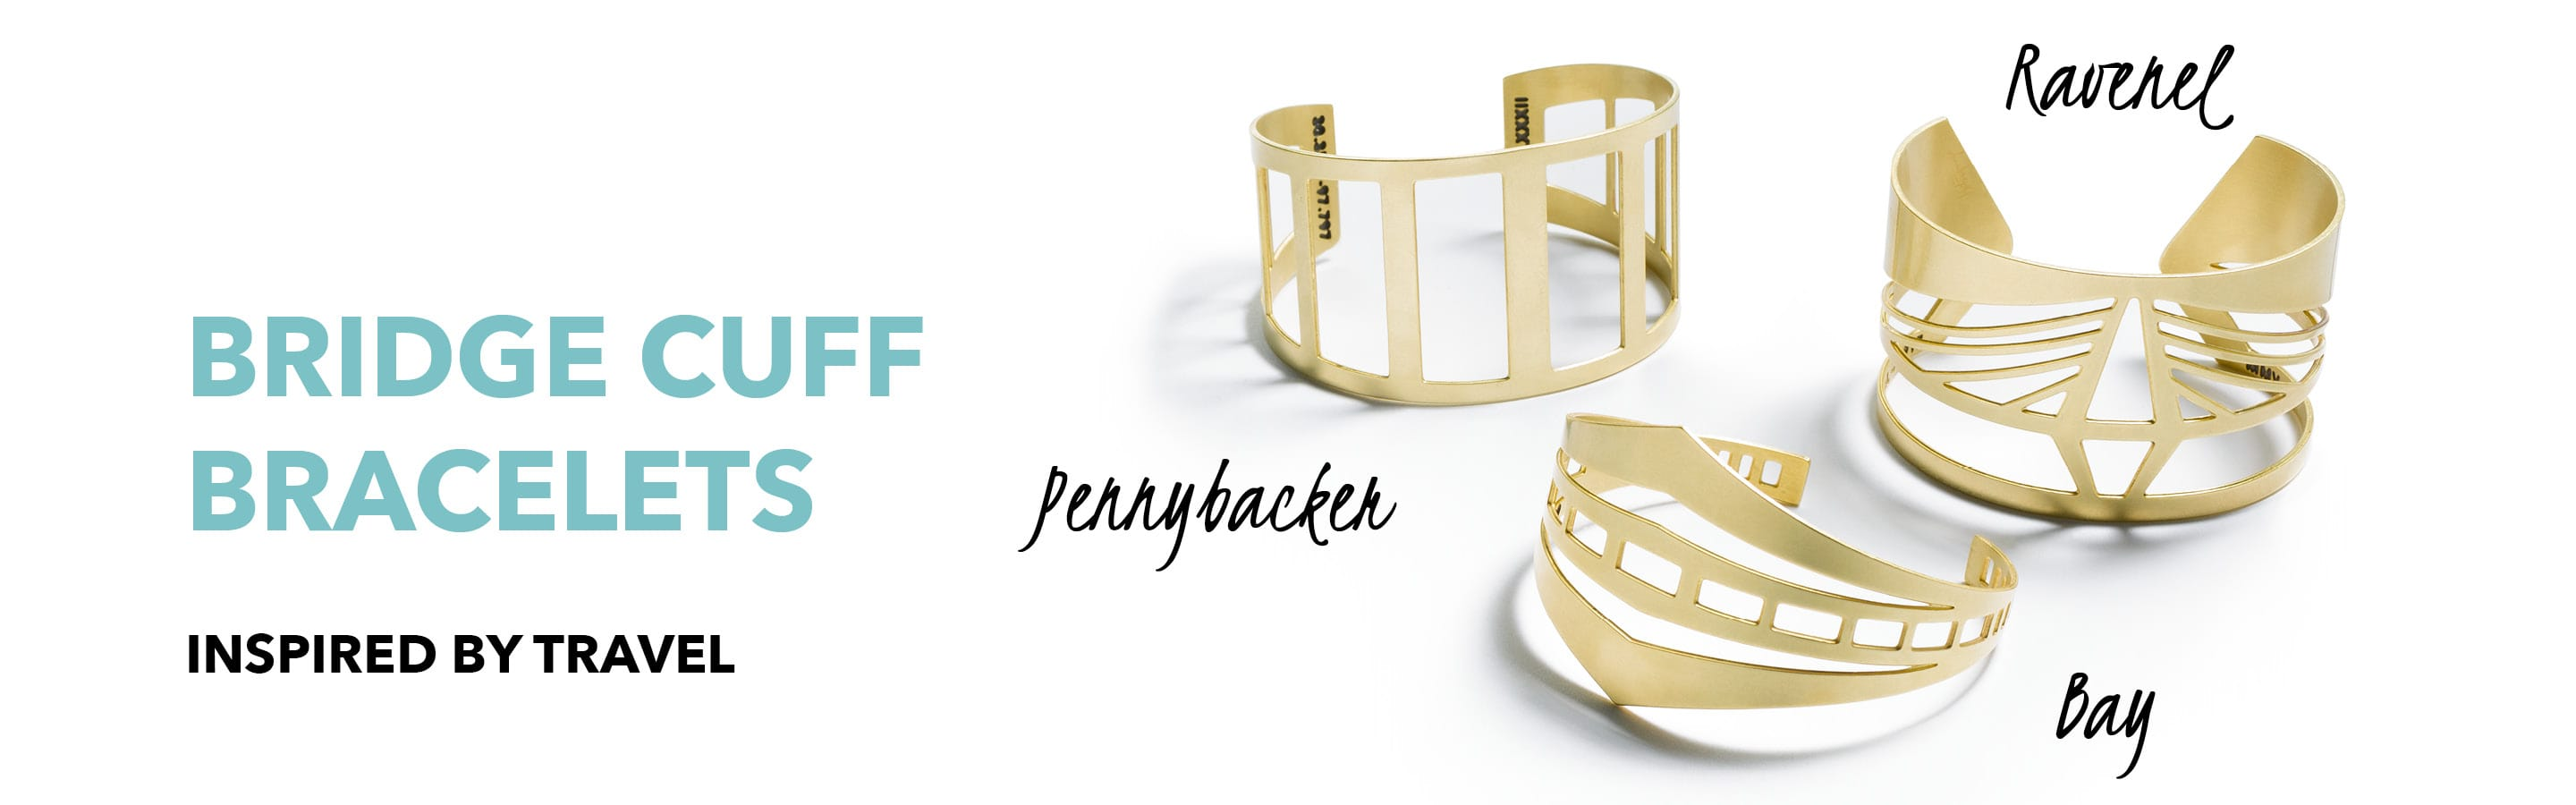 betsy & iya bridge cuff collection